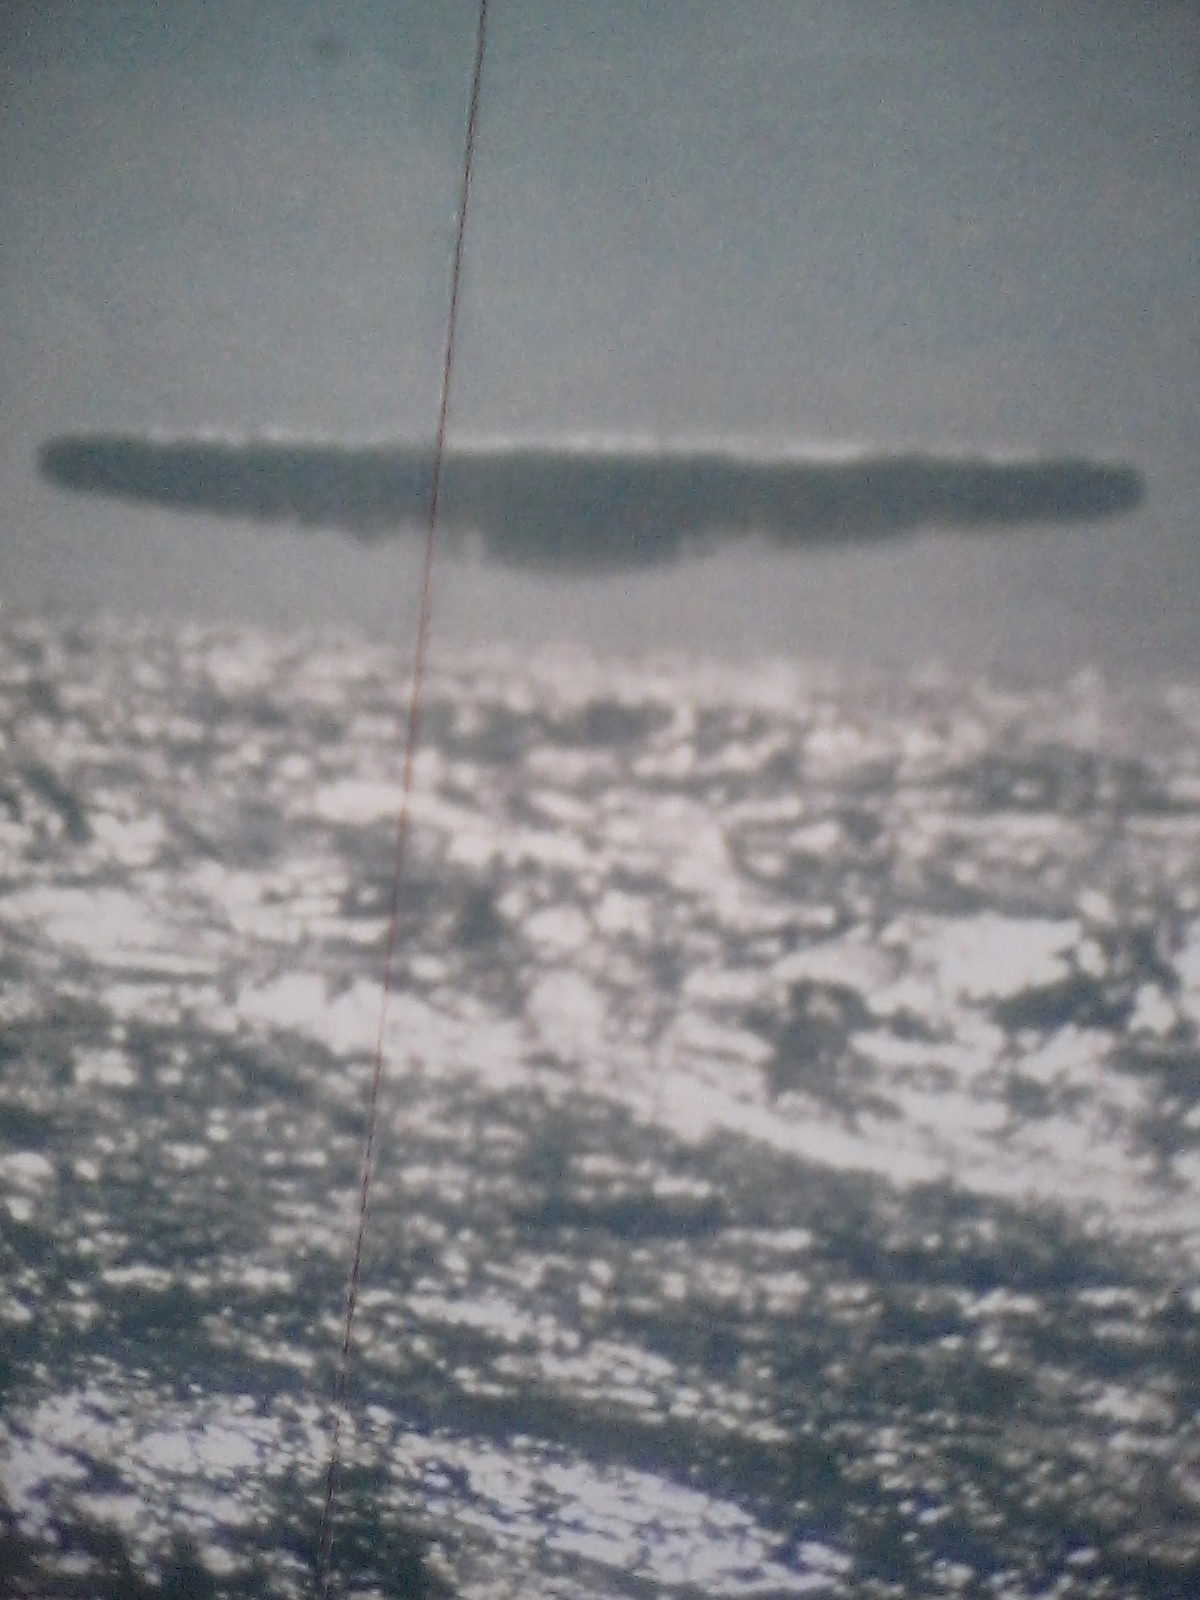 8 Compelling REAL UFO Images photographed from a Navy submarine Image070520151129531